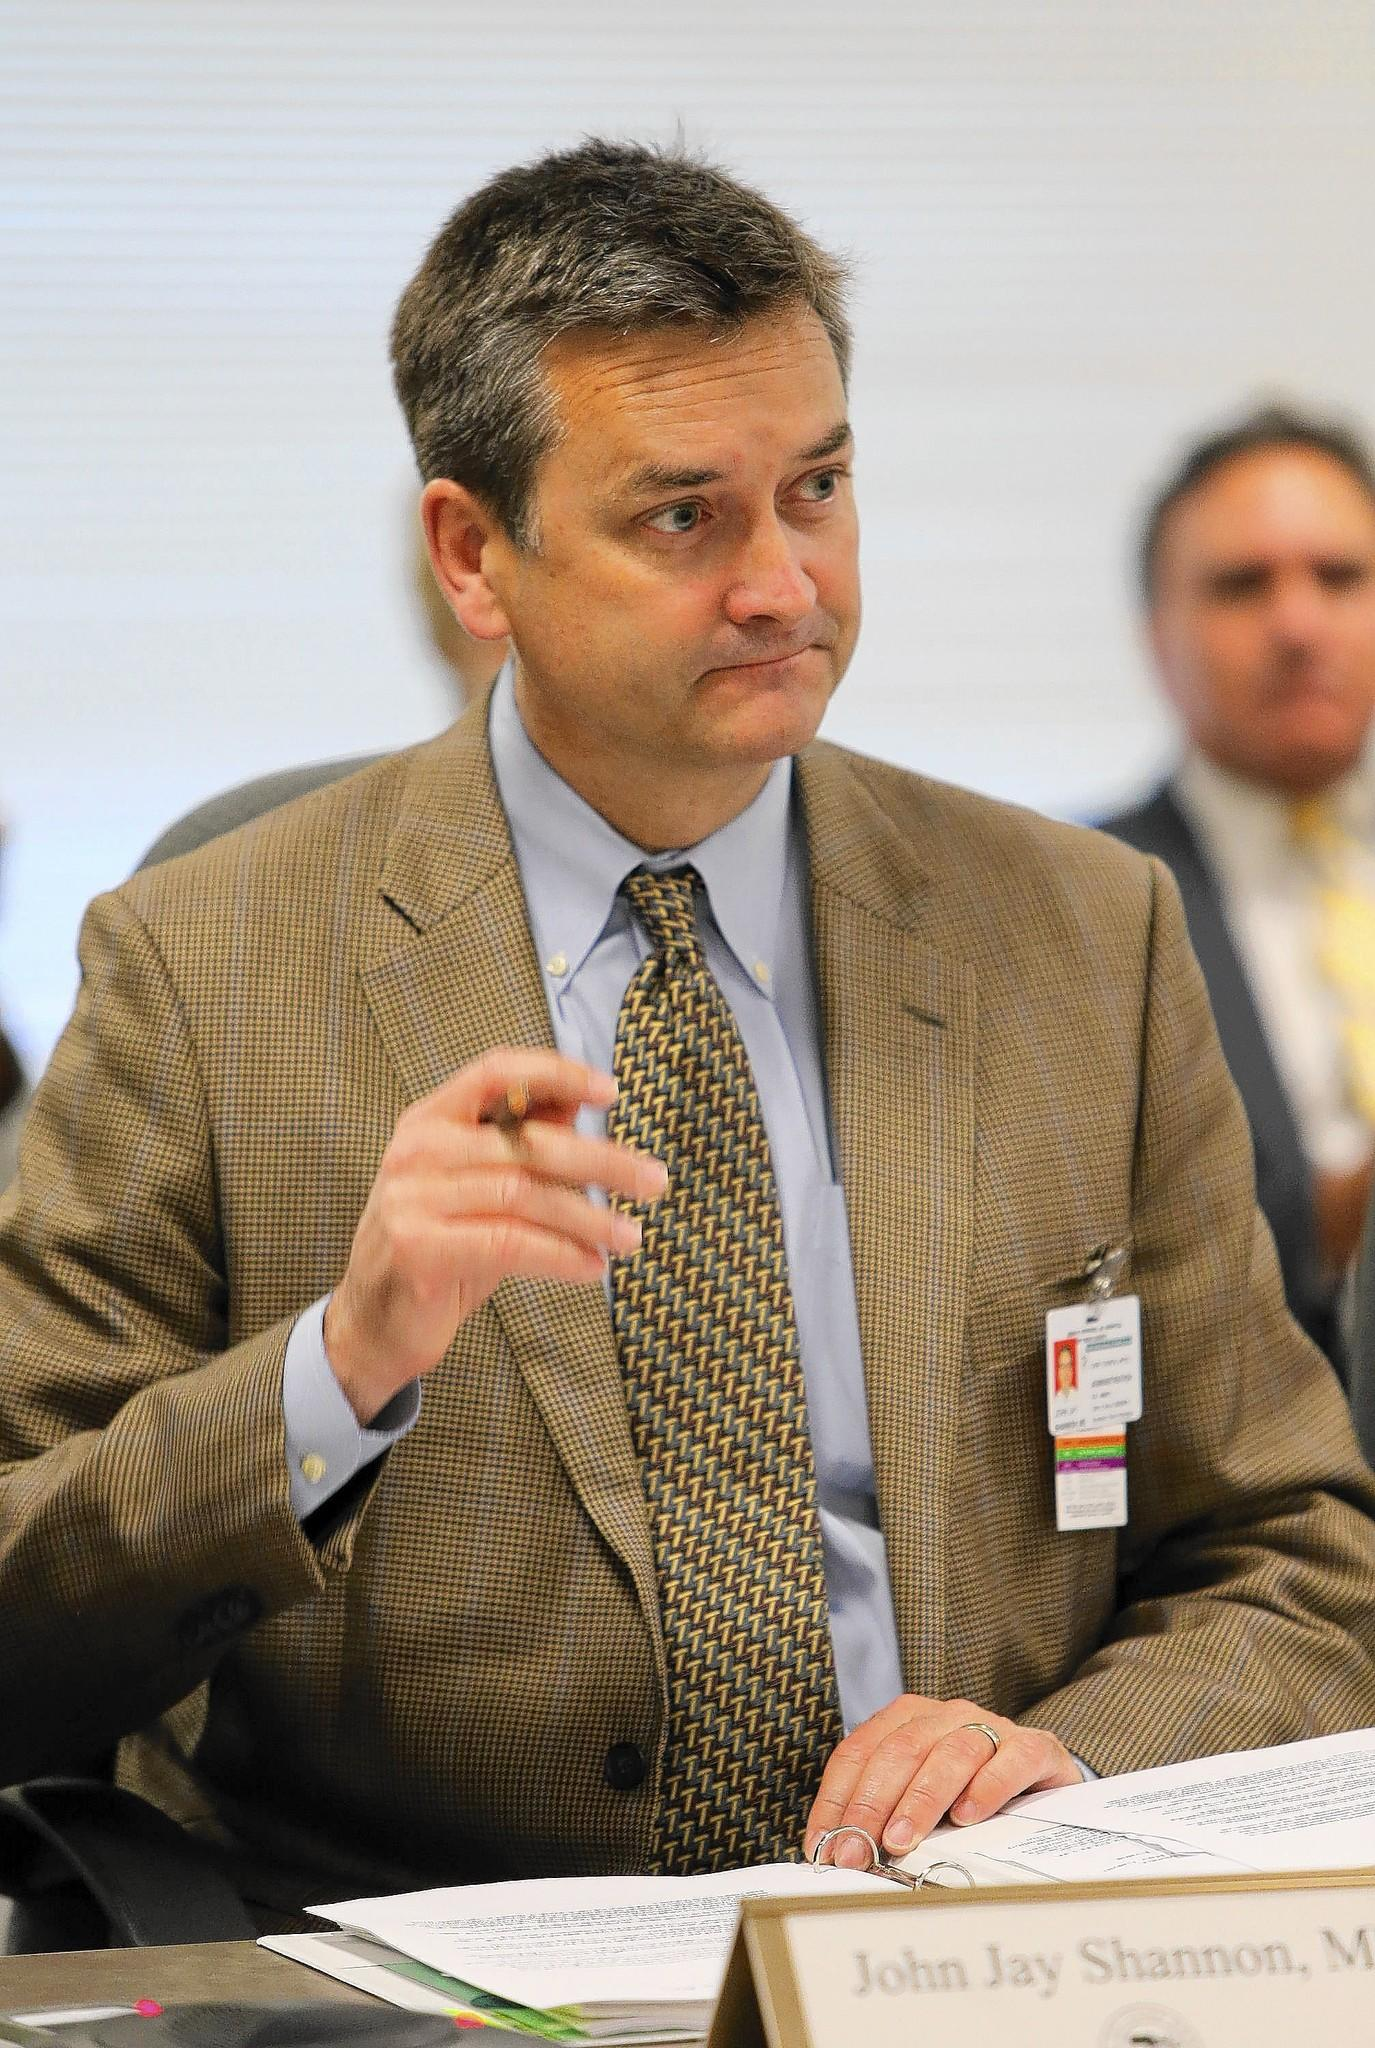 Dr. John Jay Shannon, head of the Cook County health system, has much to prove.